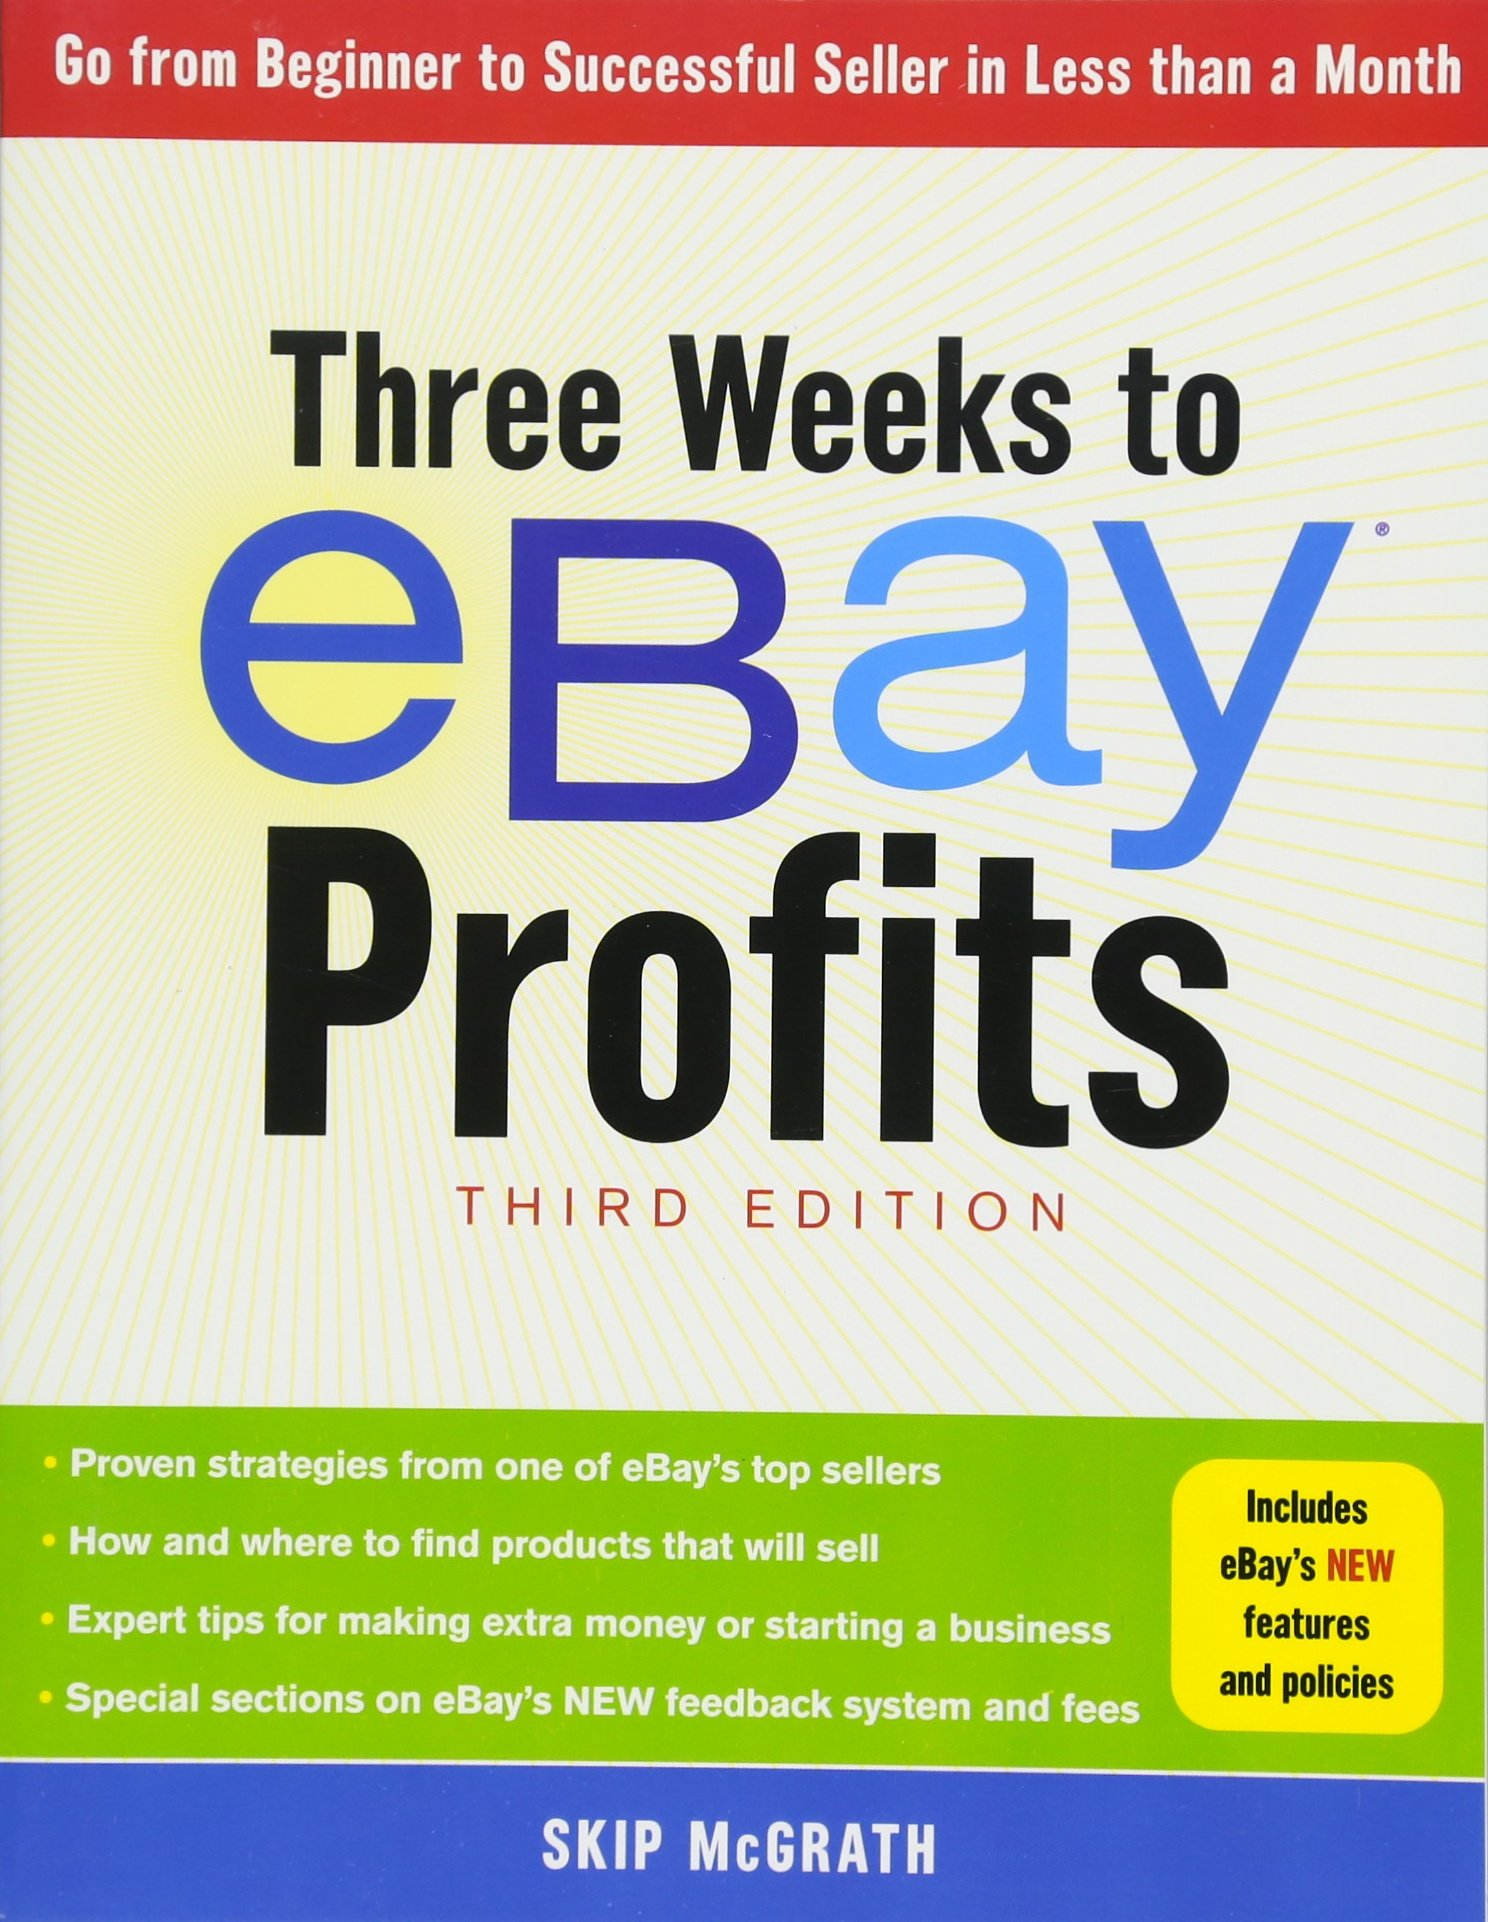 Three Weeks To Ebay Profits Third Edition Go From Beginner To Successful Seller In Less Than A Month Mcgrath Skip 9781454905813 Amazon Com Books